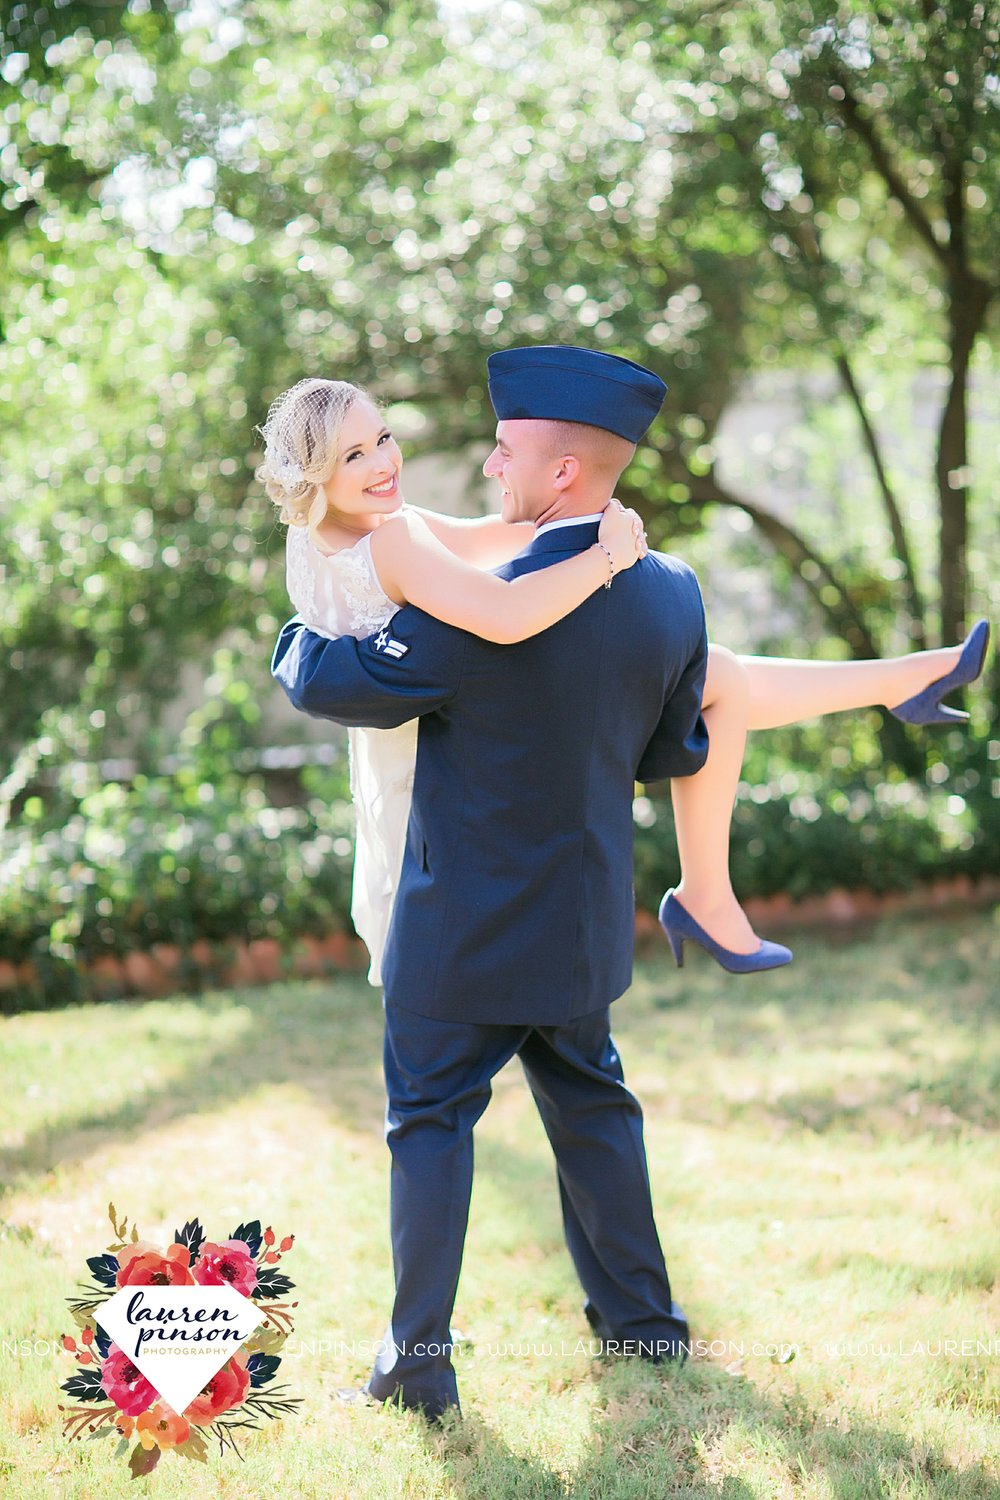 sheppard-afb-wichita-falls-texas-elopement-courthouse-wedding-photographer-justice-of-the-peace-judge-little-ceremony_3289.jpg